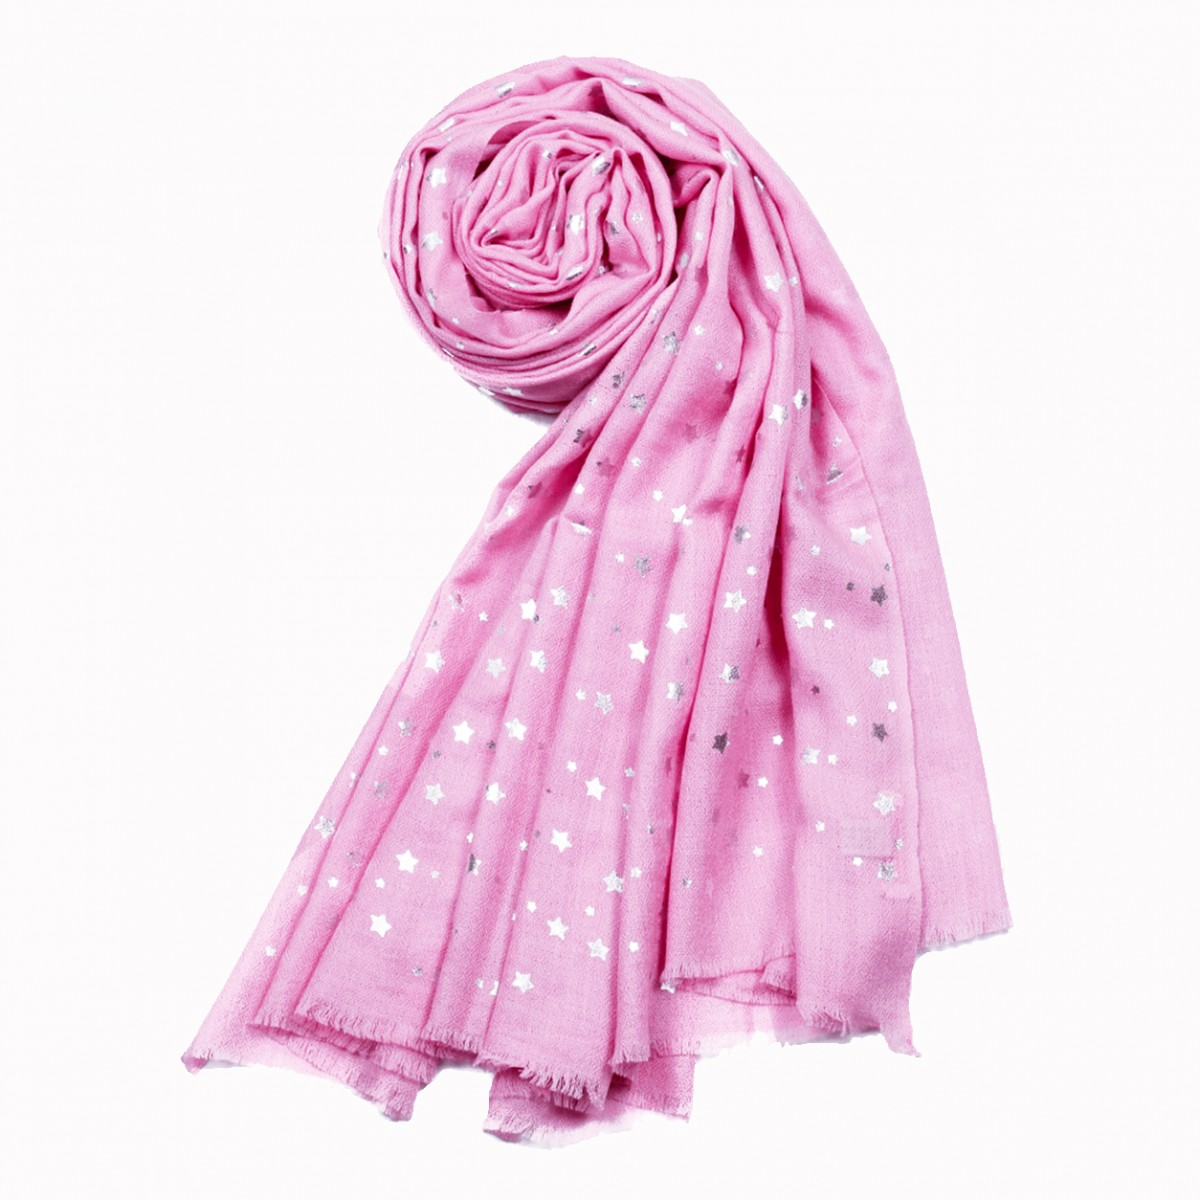 Merino Wool Star Shawl - Carnation Pink